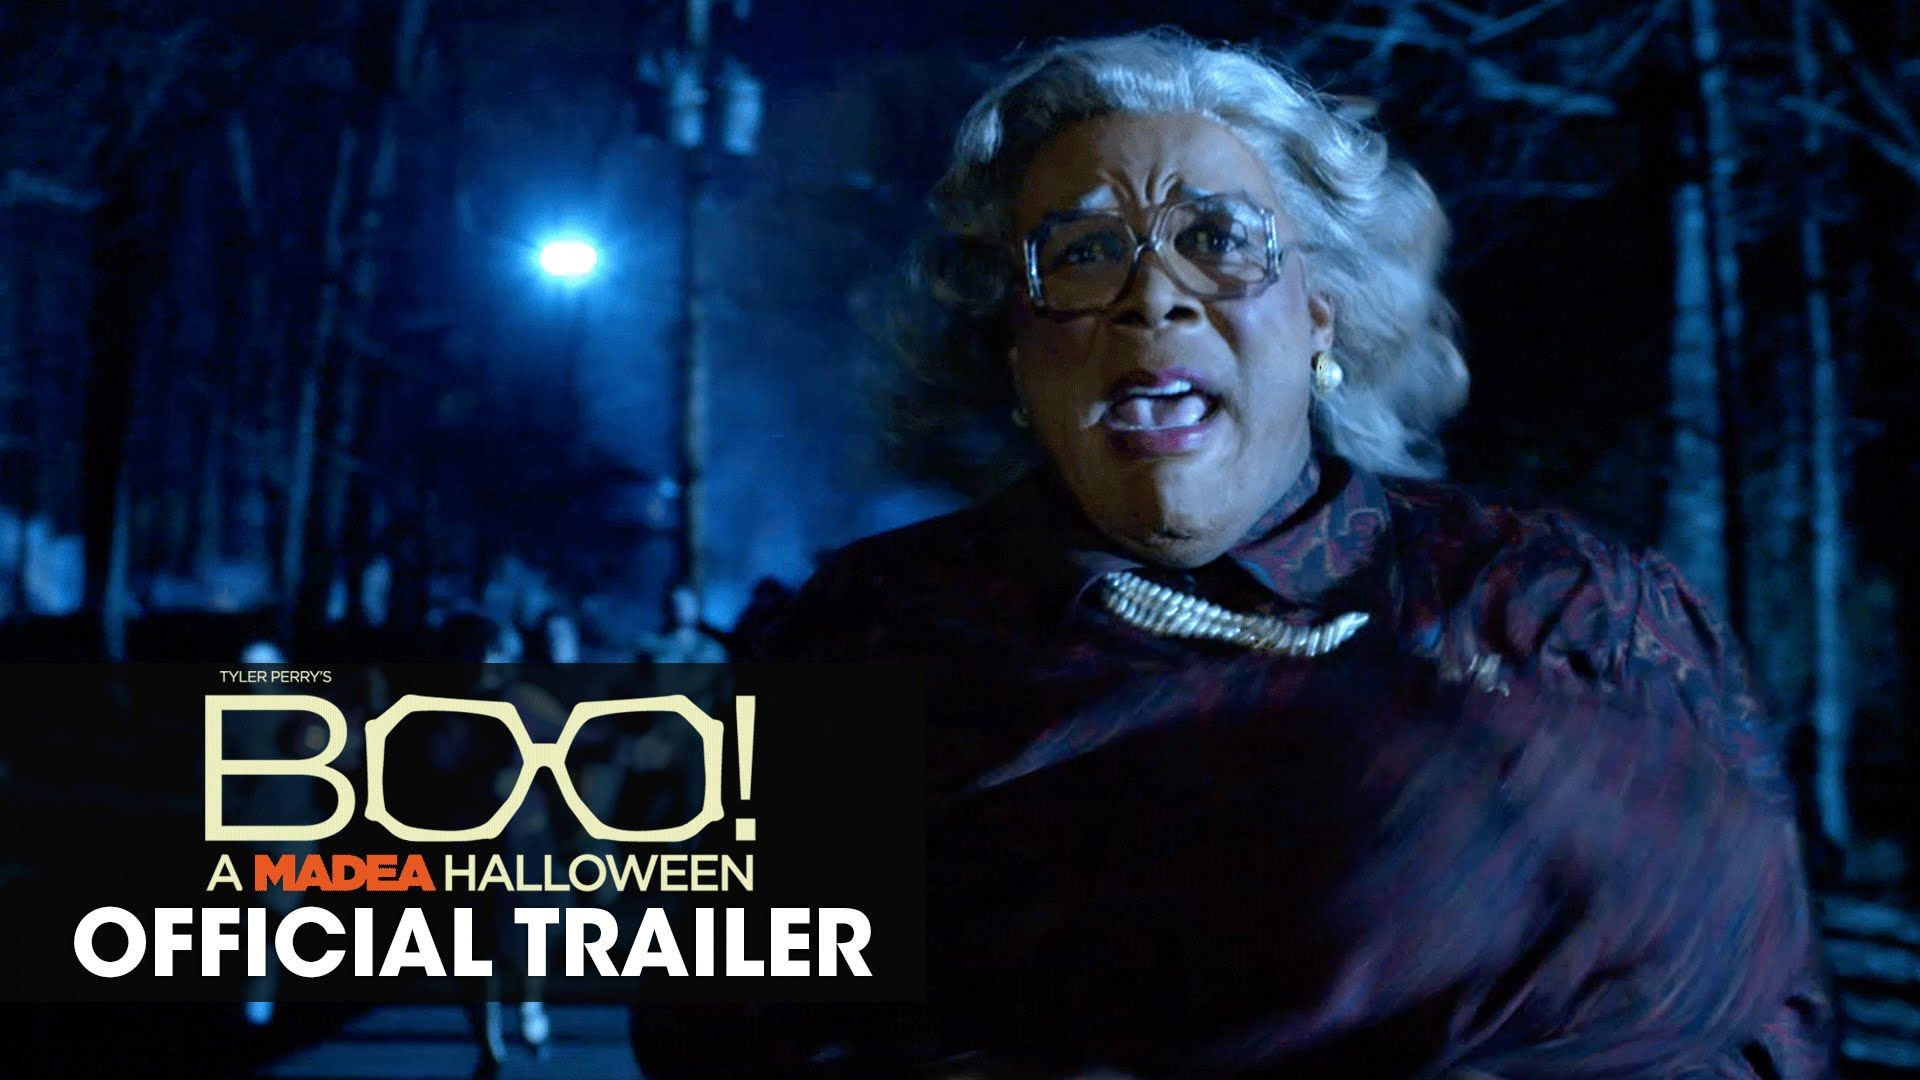 Tyler Perry's BOO! A MADEA HALLOWEEN Official Trailer